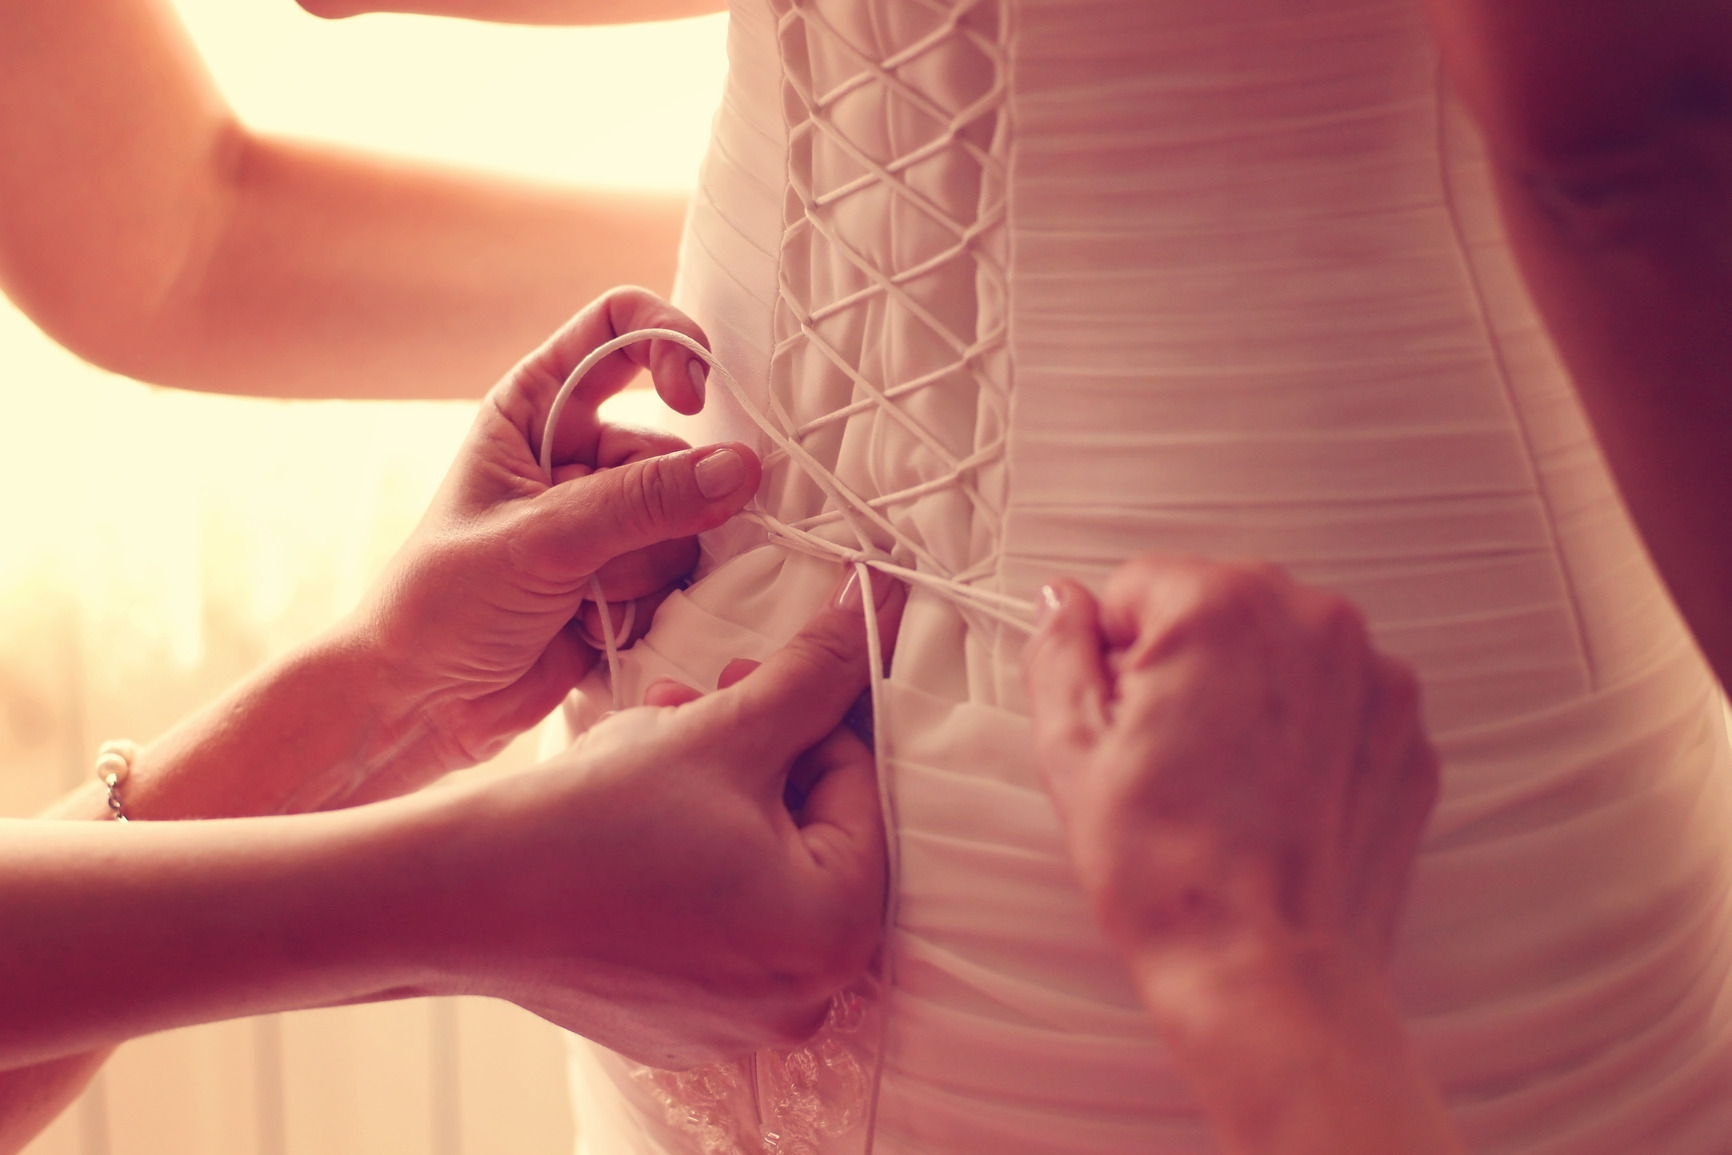 photodune-11751328-hands-helping-the-bride-with-her-wedding-dress-m.jpg